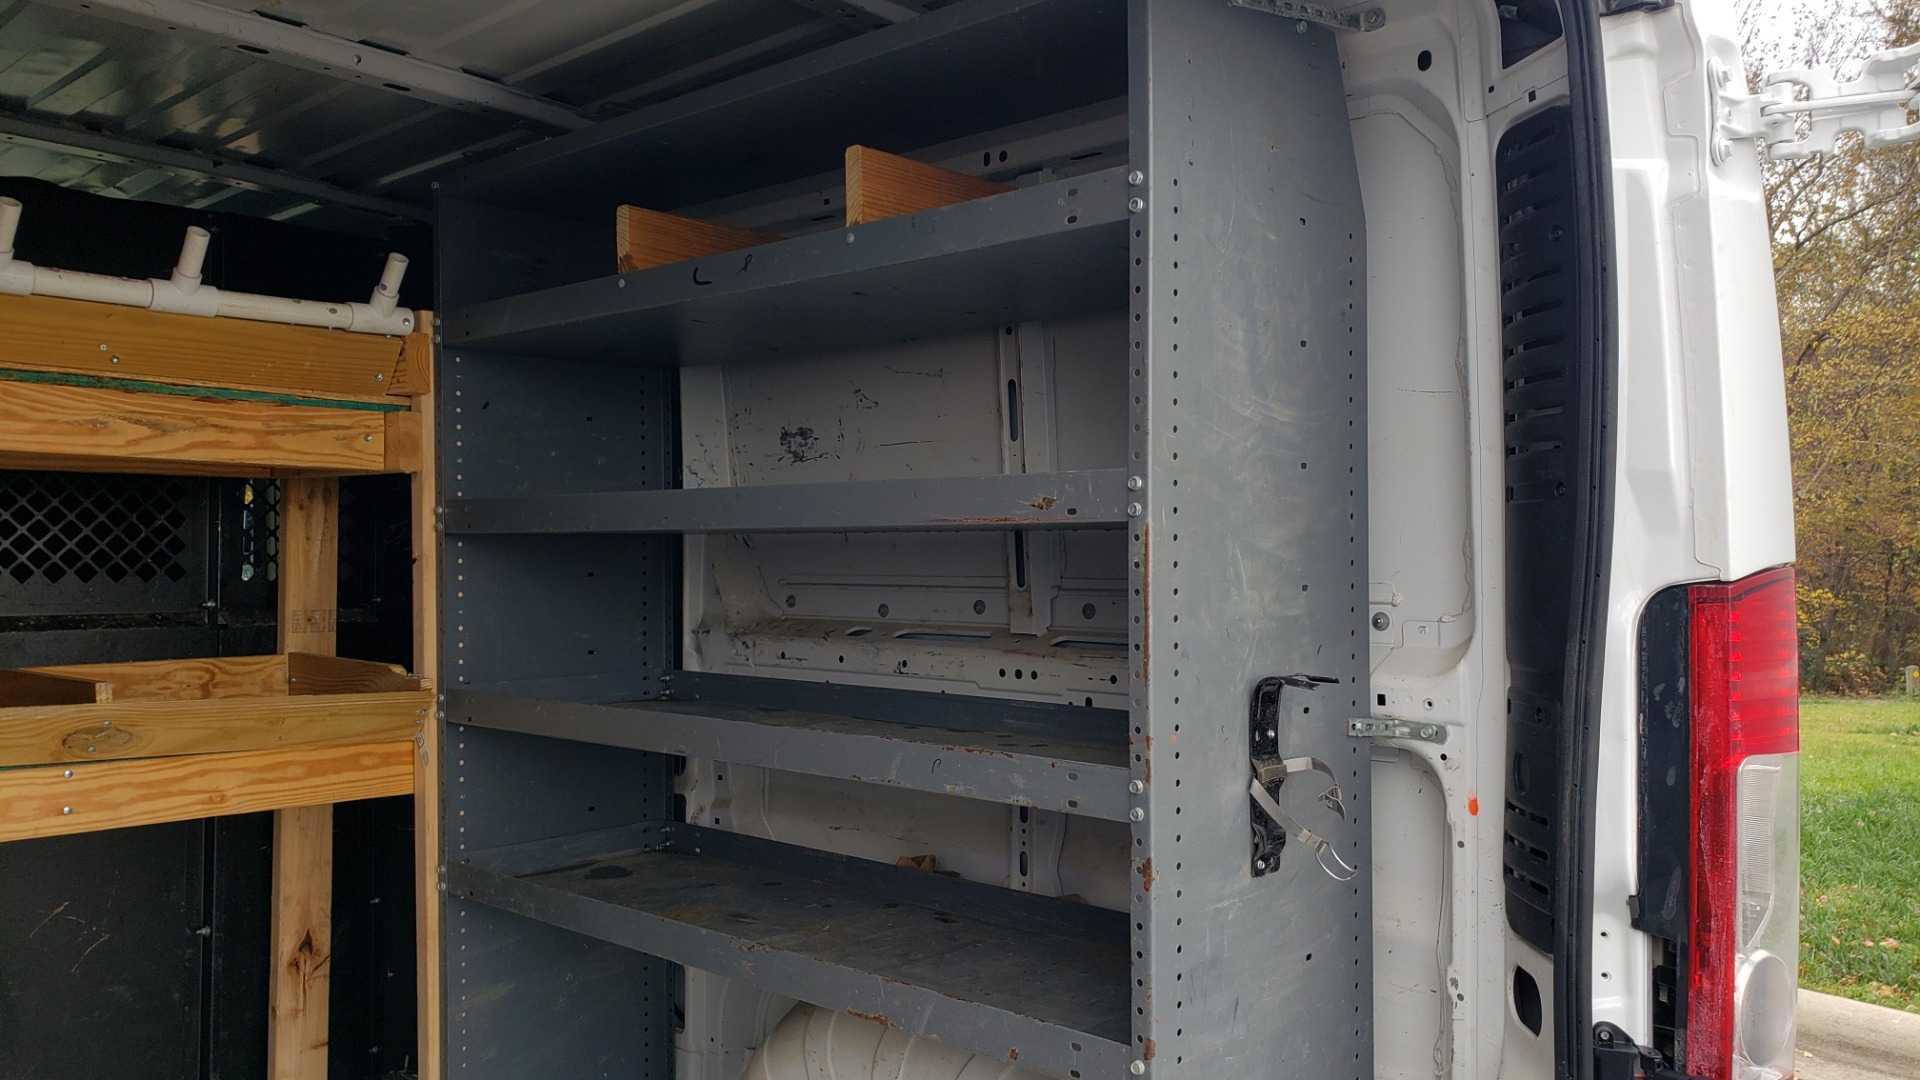 Used 2015 Ram PROMASTER CARGO VAN 136-INCH WB / LOW ROOF / LADDER RACK / INSIDE RACKS for sale $16,995 at Formula Imports in Charlotte NC 28227 57